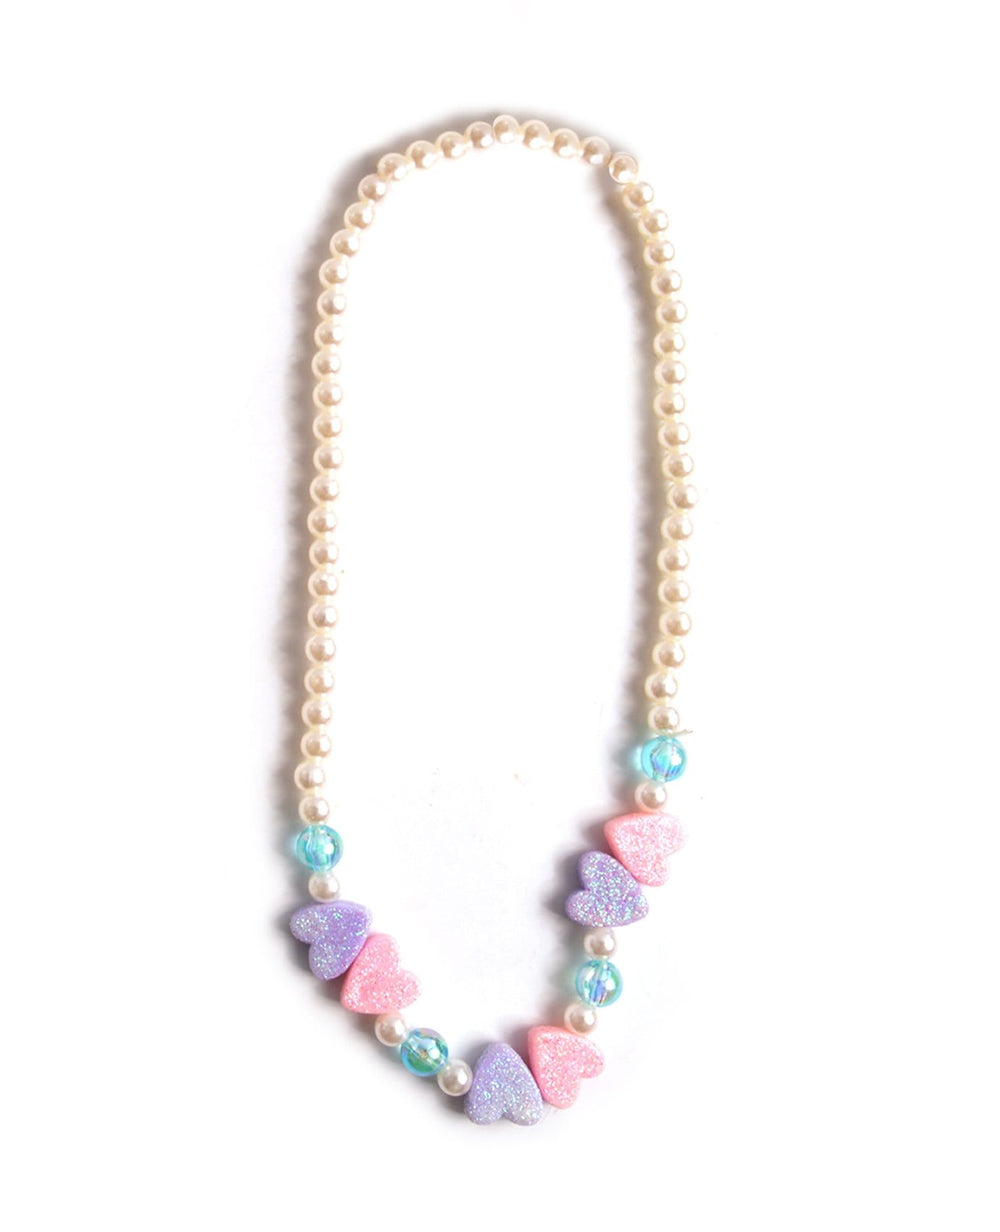 Marshmallow Hearts Necklace